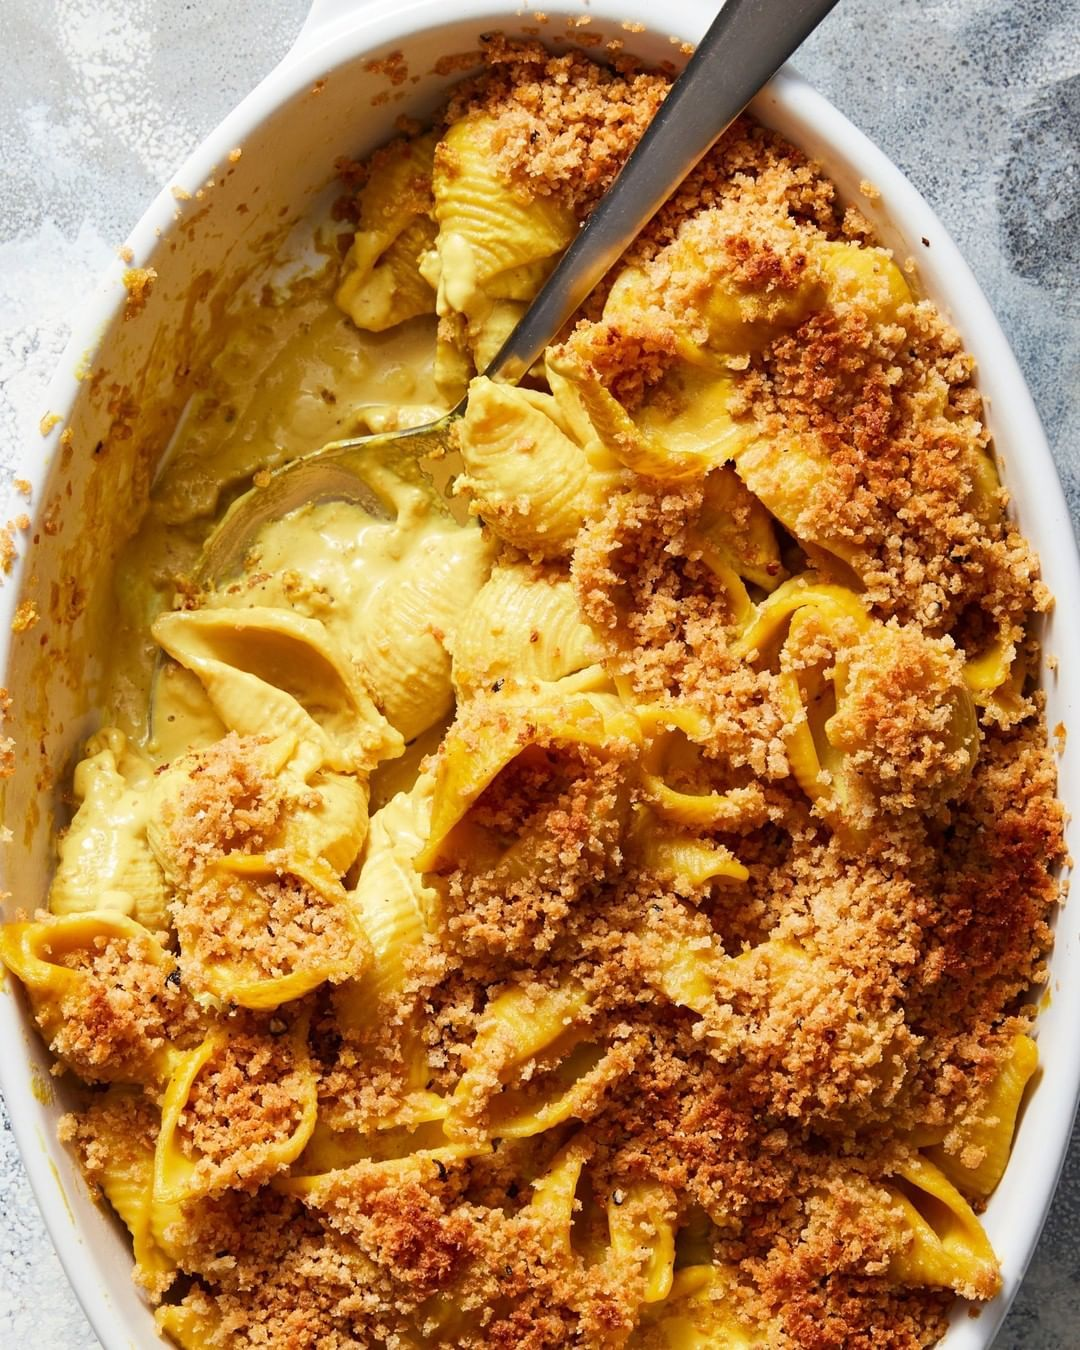 Nyt Cooking On Instagram Many Of The Internet S Vegan Mac And Cheese Recipes Call For An Arsenal Of Hard To Find Ingredients Alexaweibel Developed This One